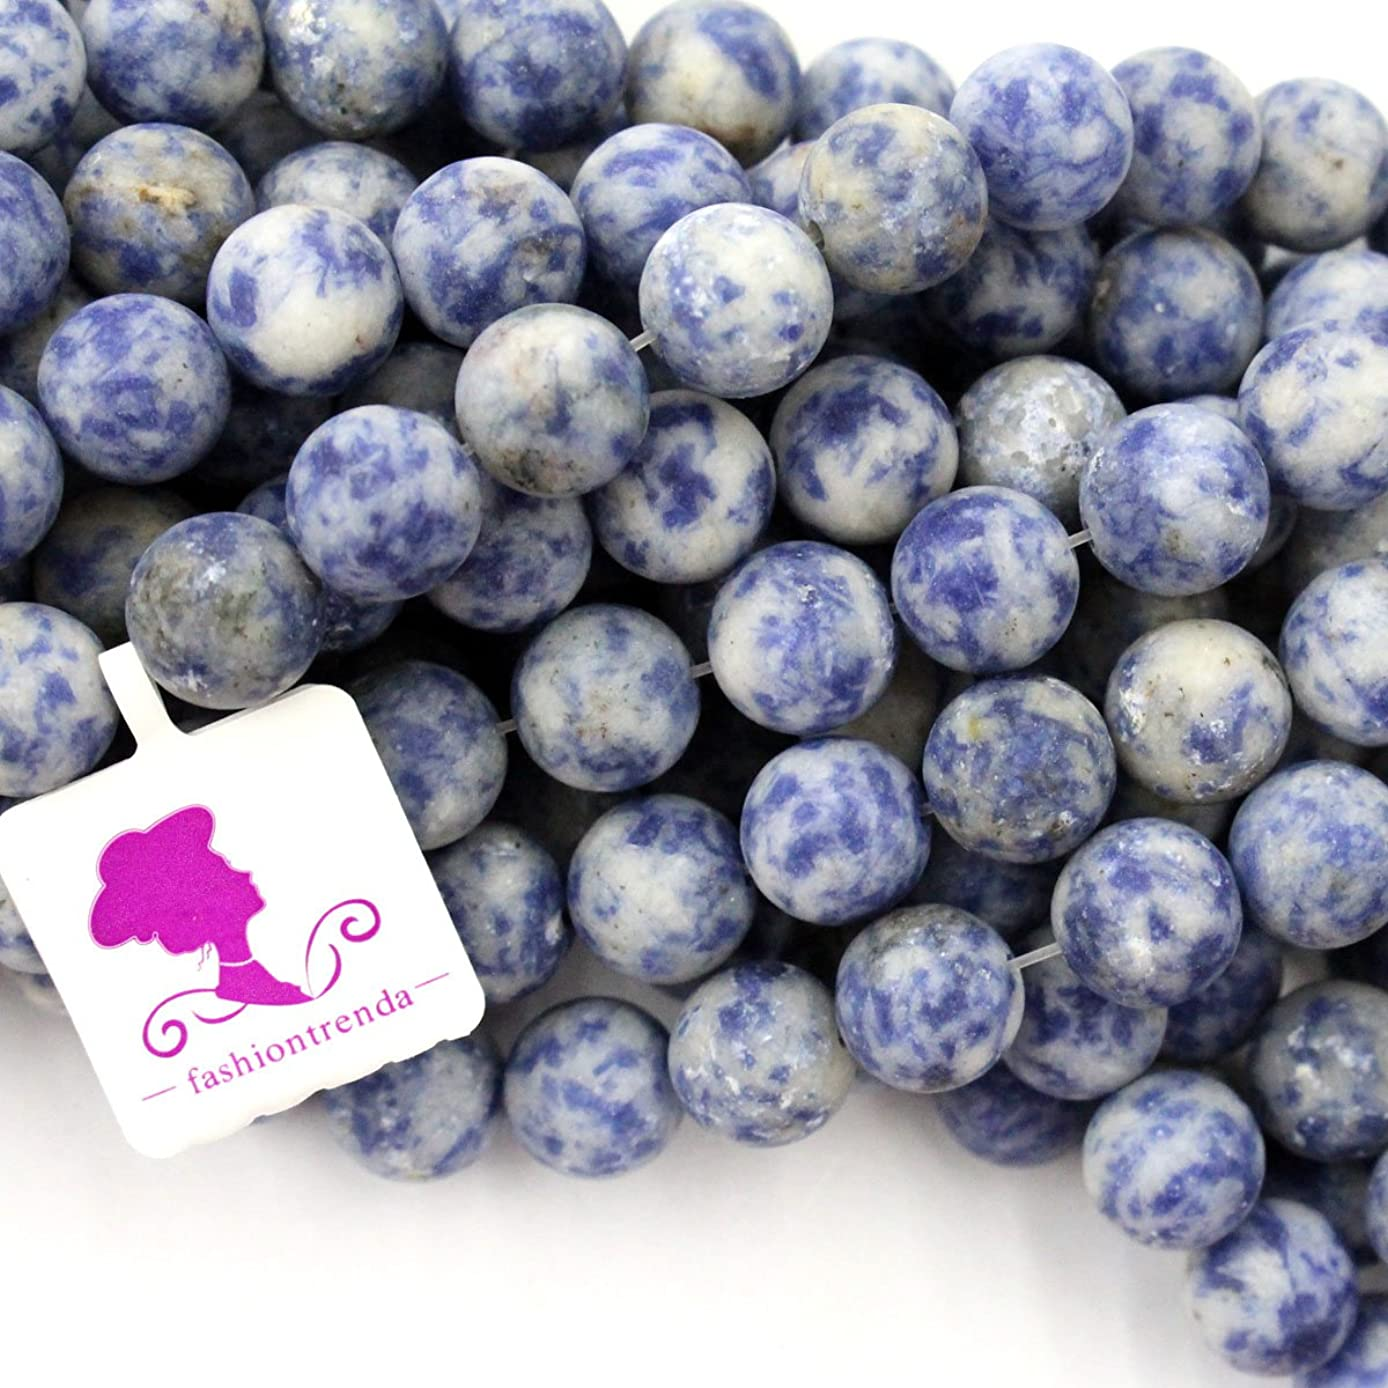 Fashiontrenda Natural Matte Unpolished African Sodalite Round Gemstones Beads for DIY Jewelry Making (8mm)